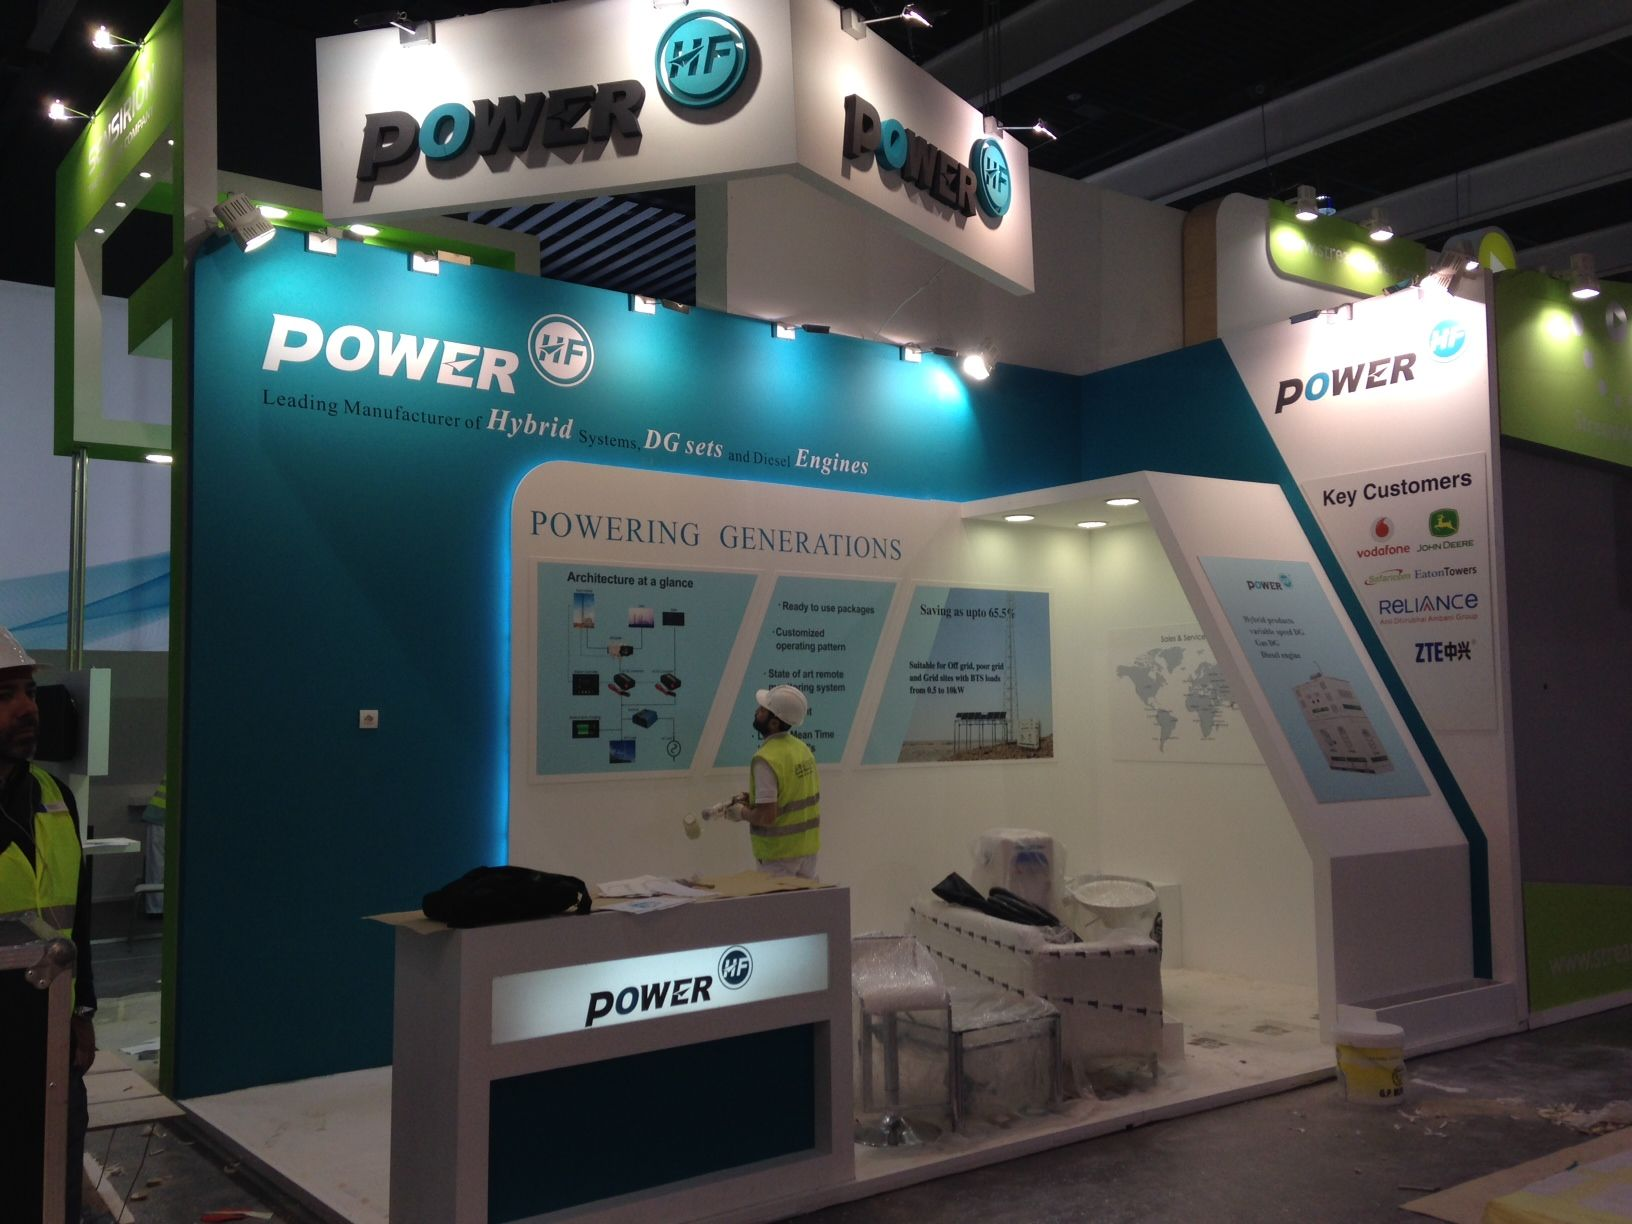 Expo Stands 2015 : Mobile world congress exhibition stand mwc hf power